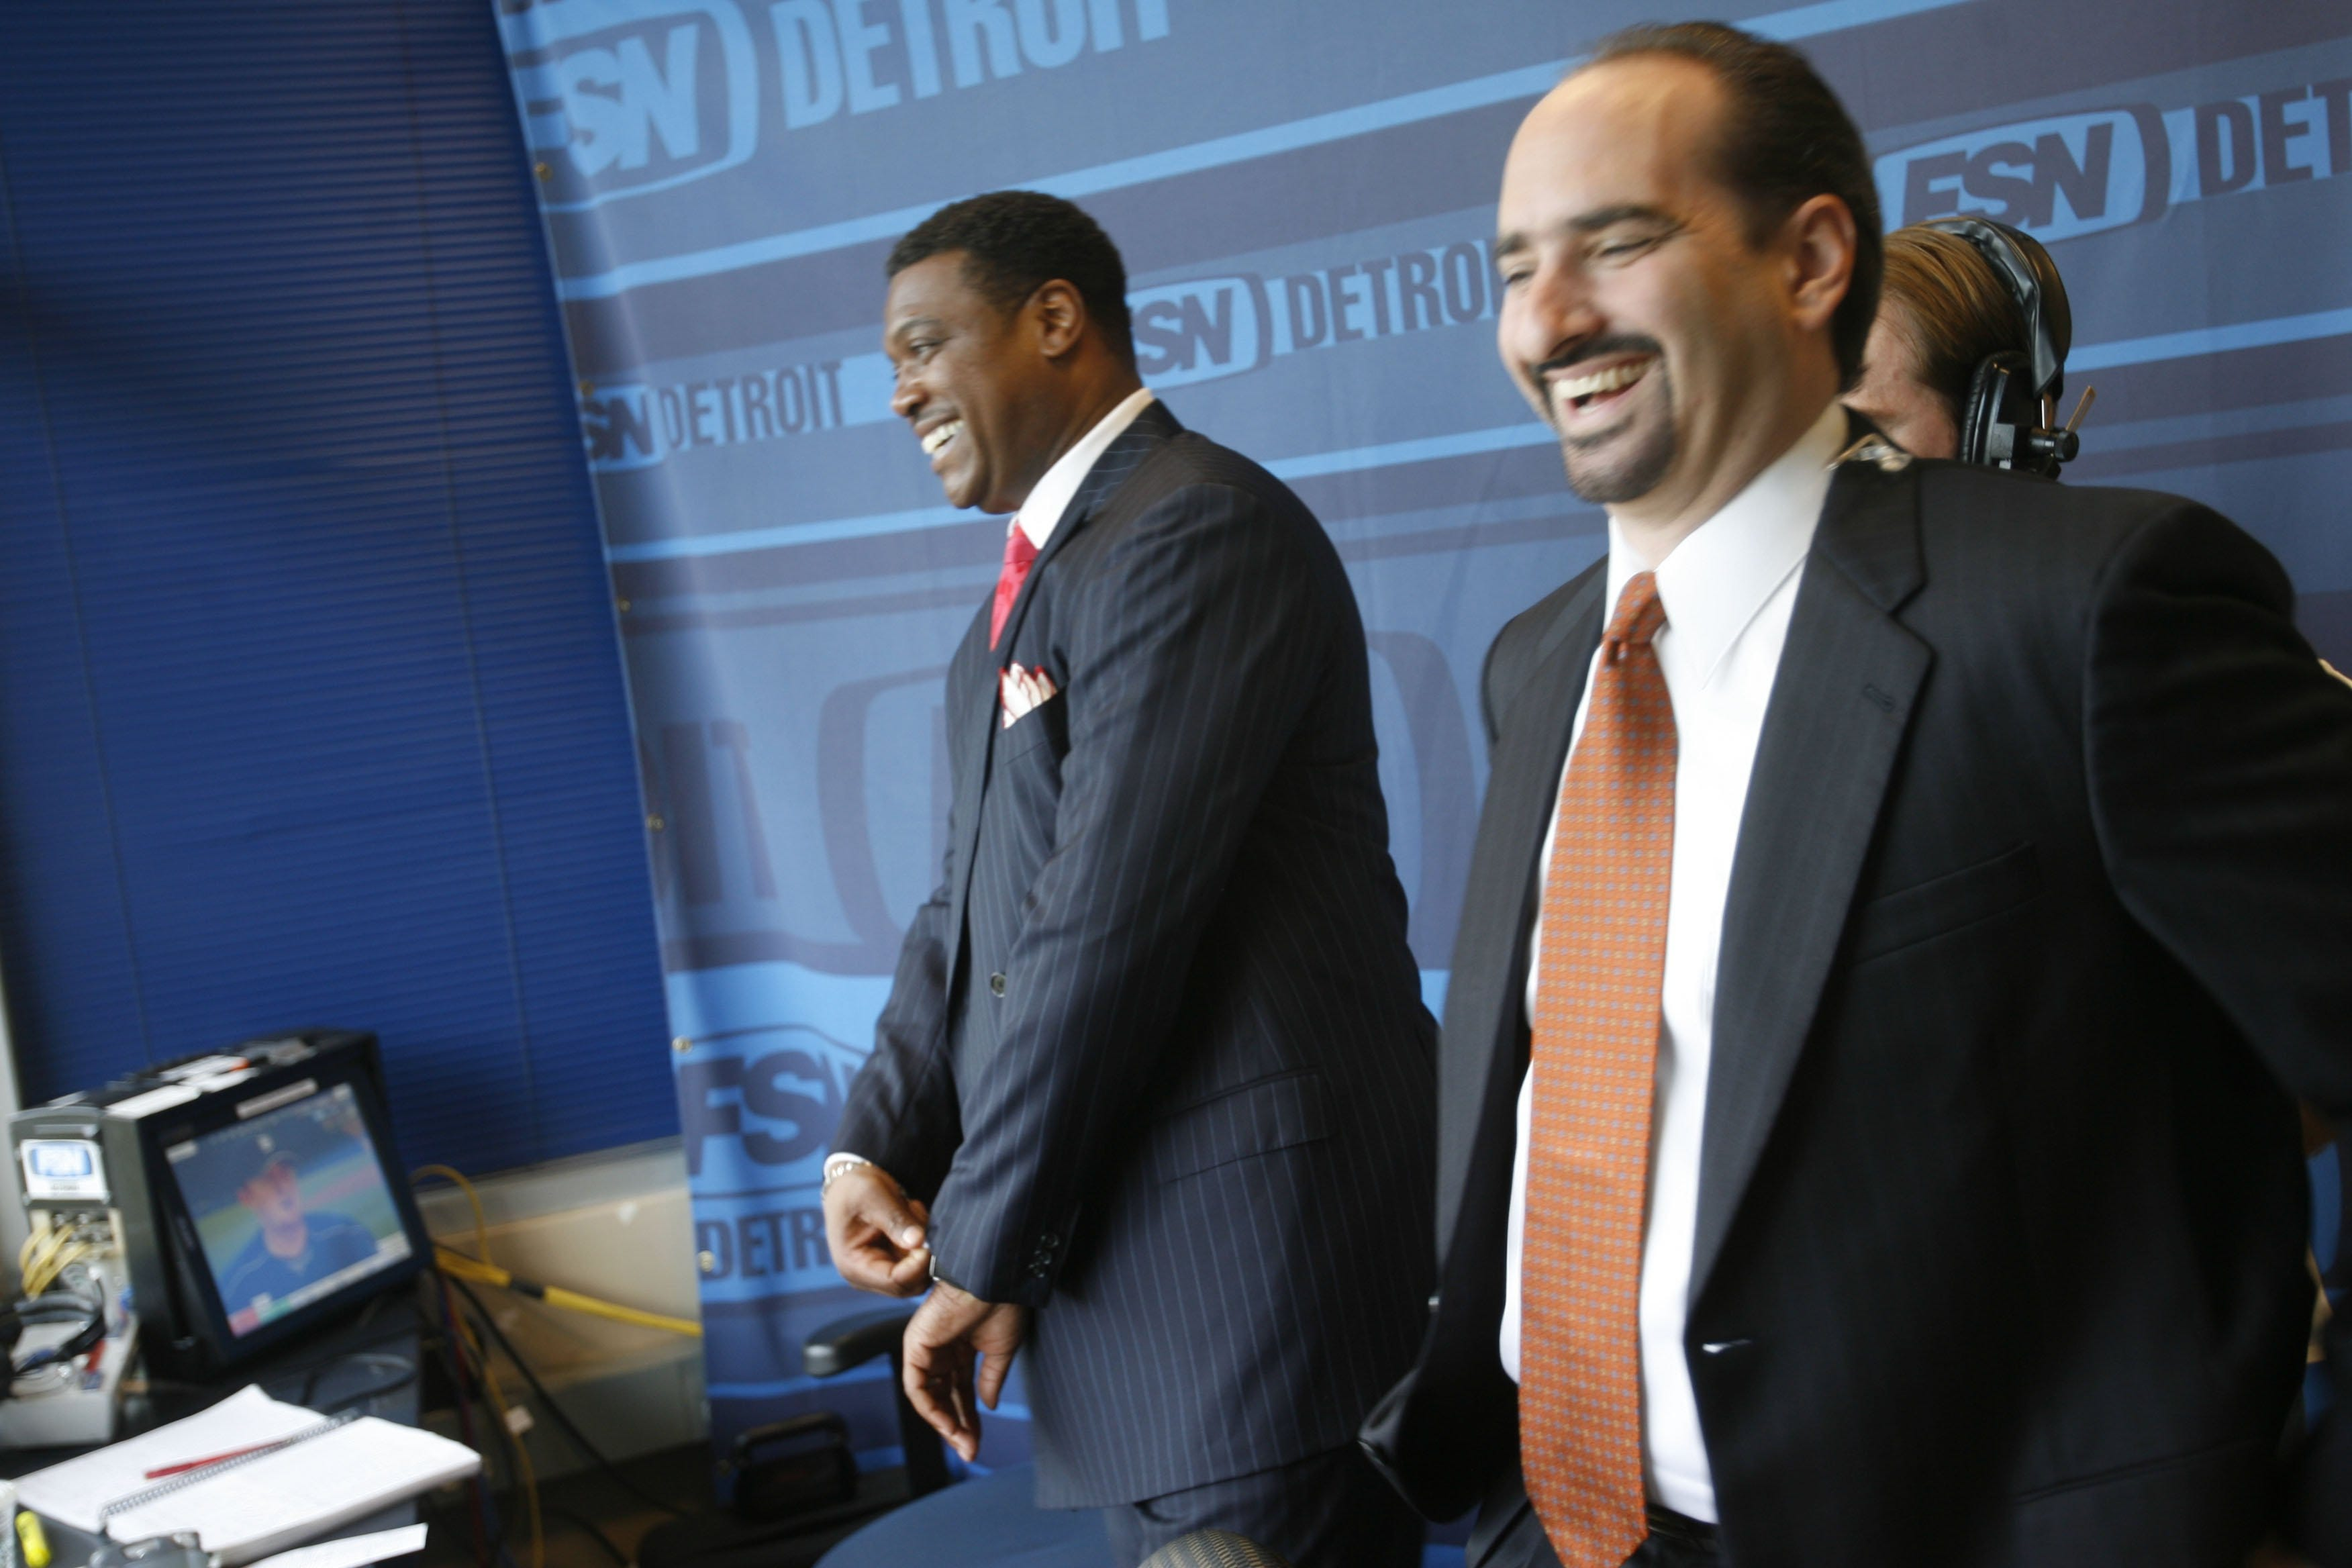 What really happened between Detroit Tigers announcers involved in altercation?